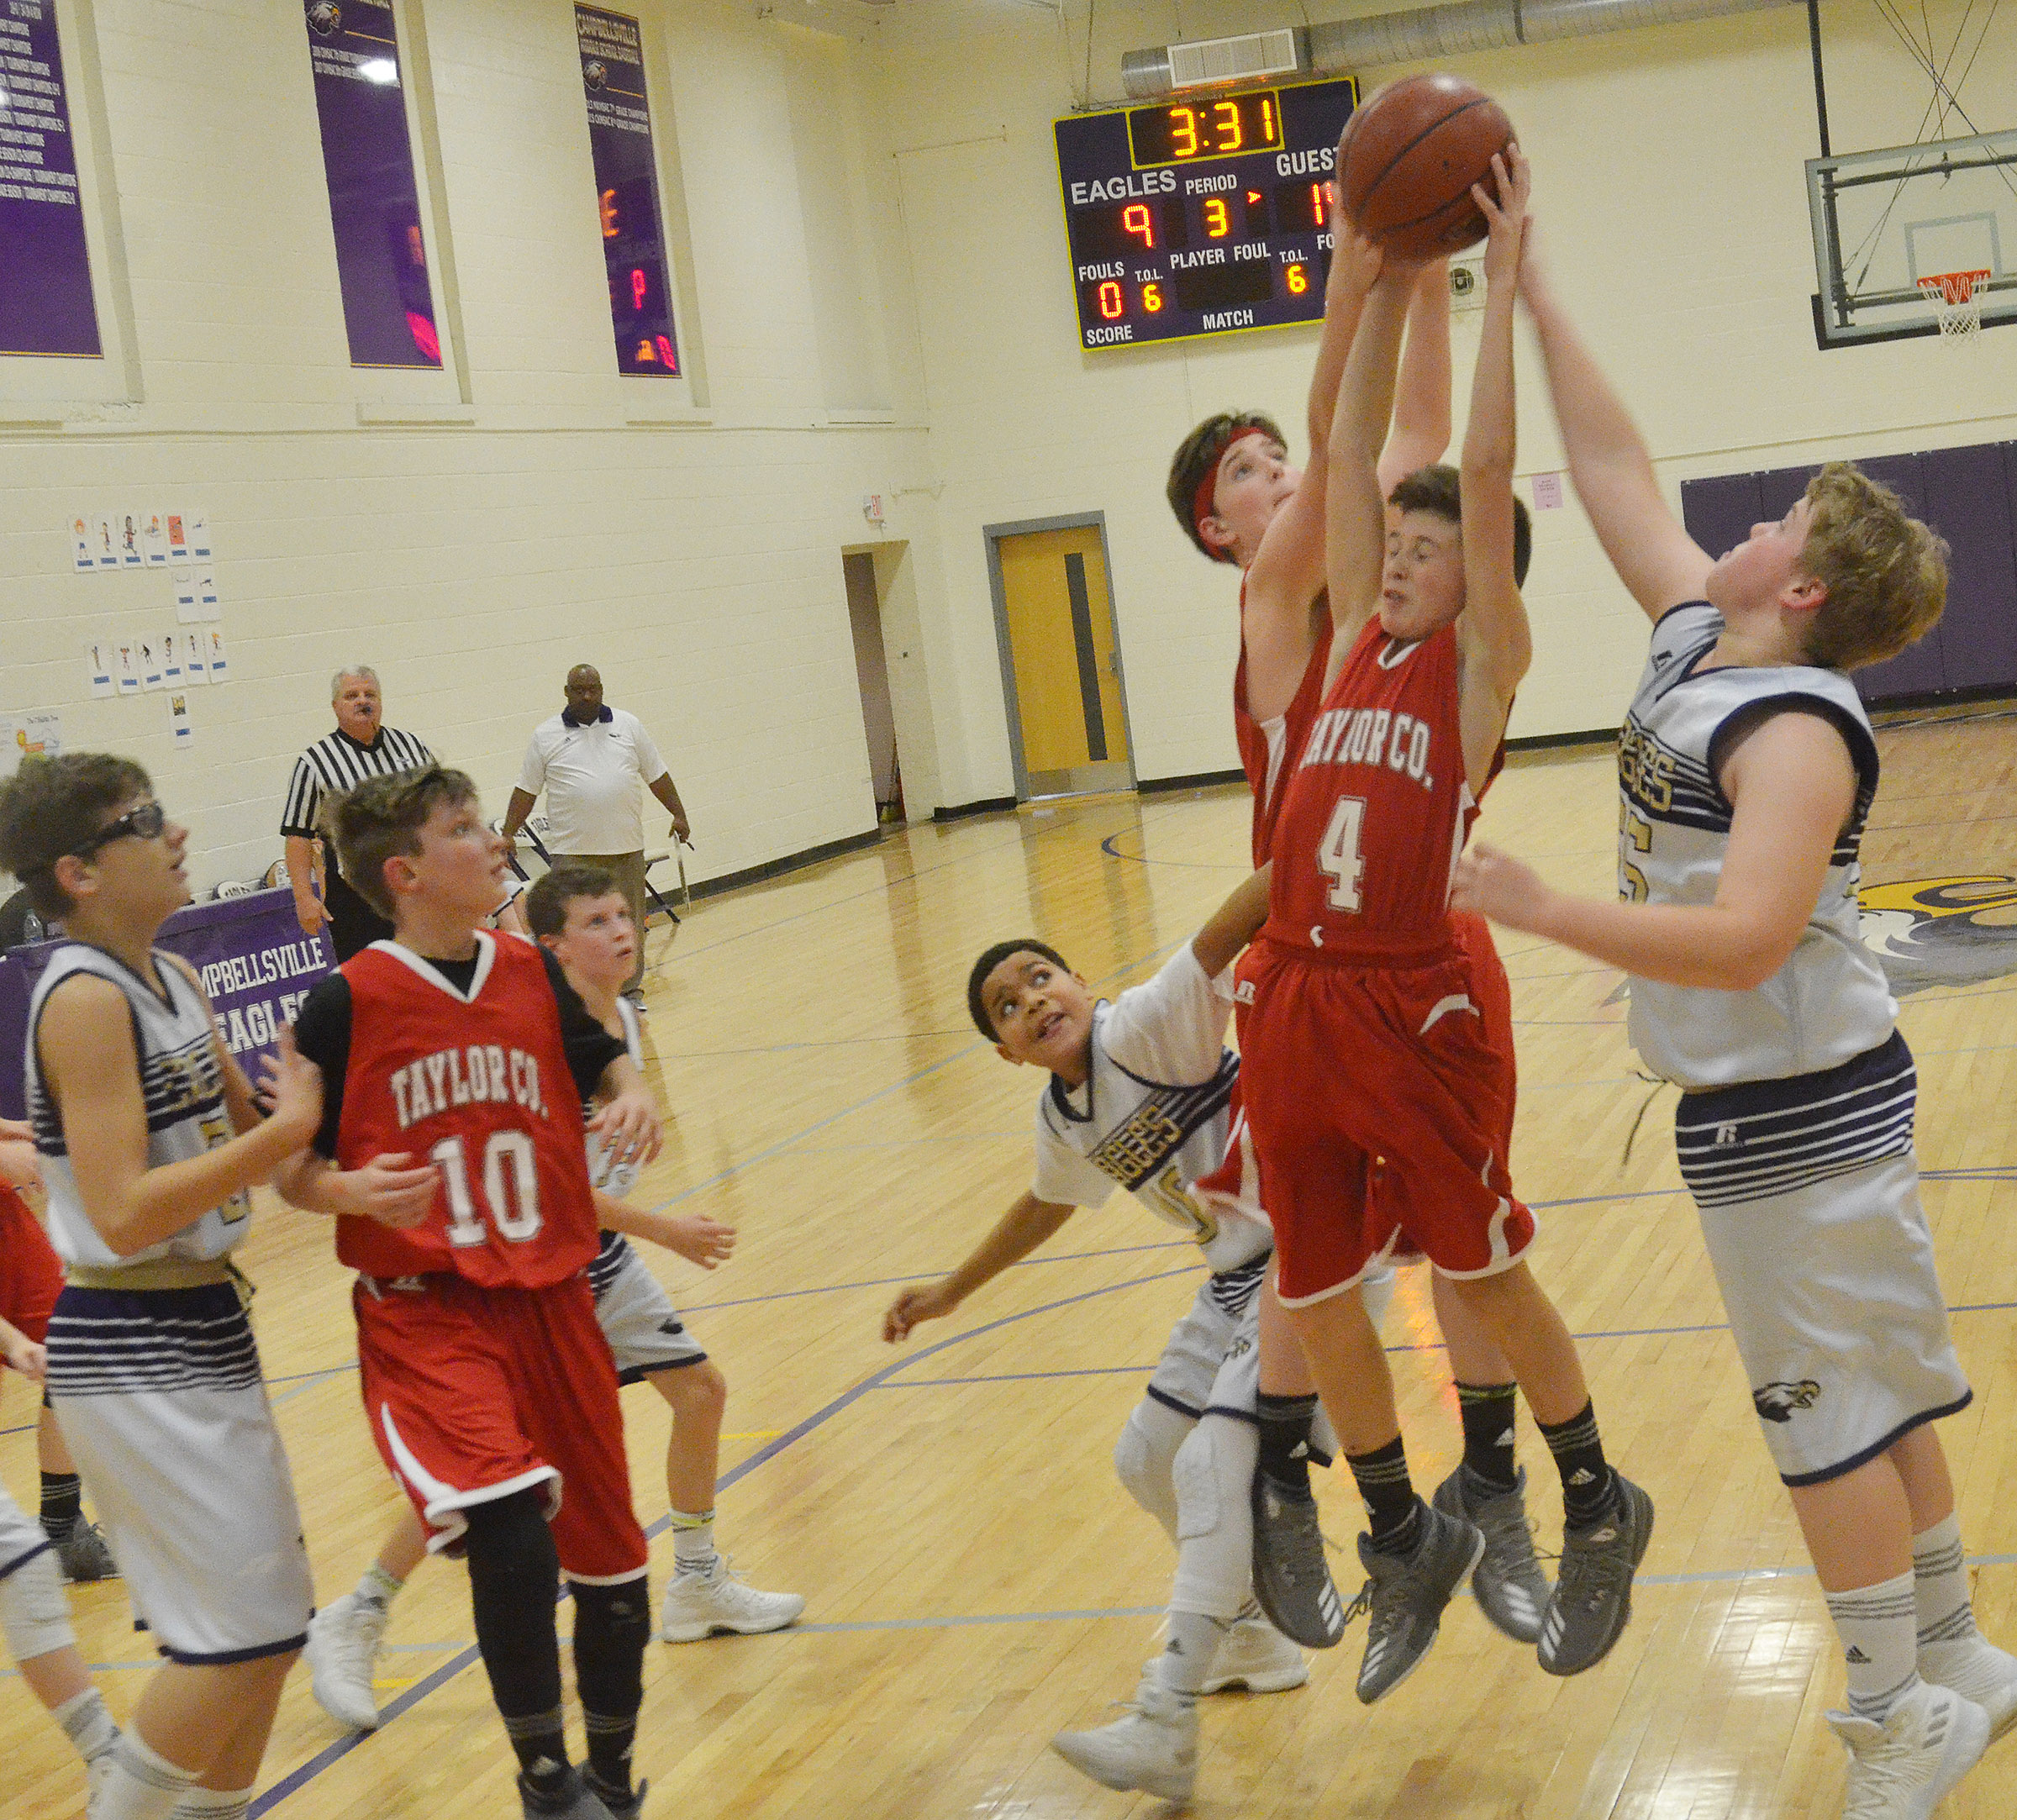 CMS sixth-grader Ryan Grubbs, at right, attempts to steal the ball.